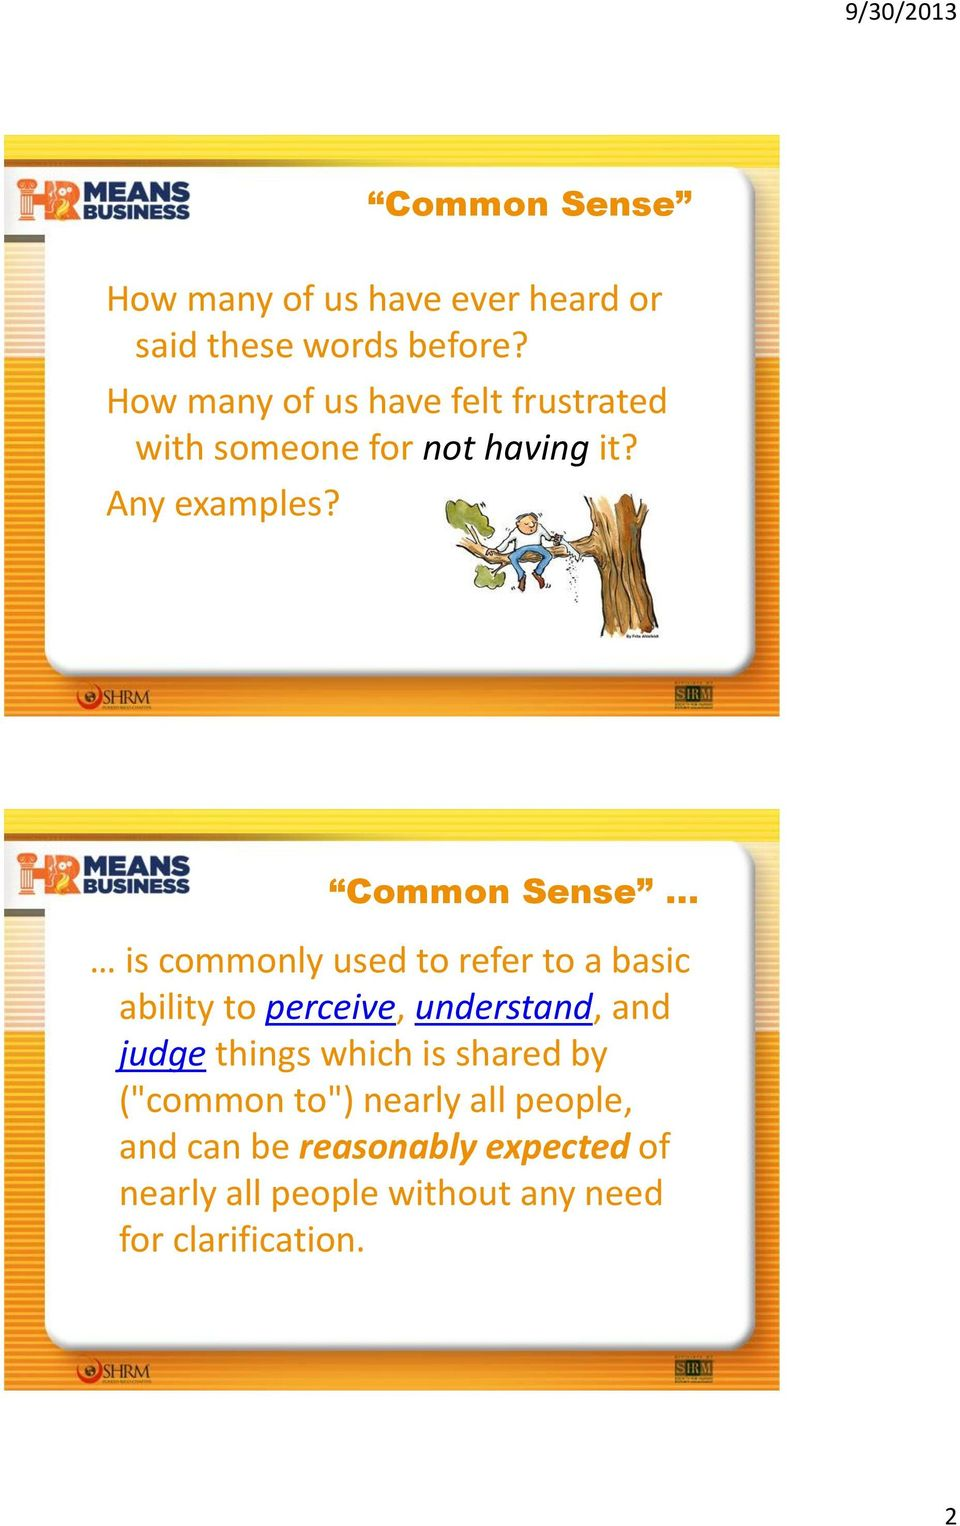 Common Sense is commonly used to refer to a basic ability to perceive, understand, and judge